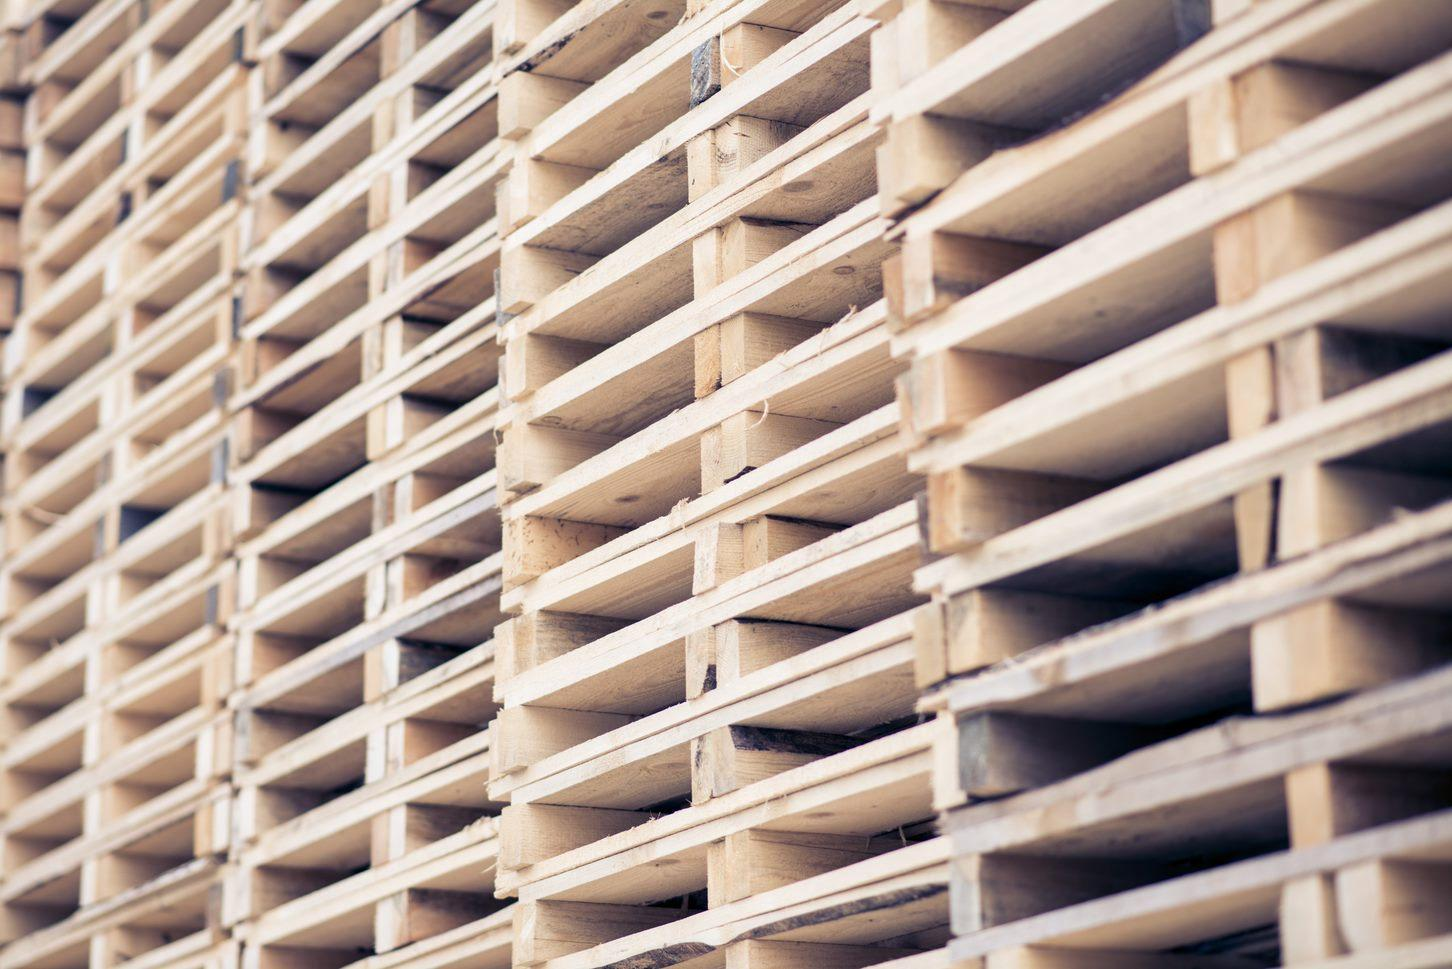 What is the future of pallet solutions? How green initiatives sync up with recycling your pallets